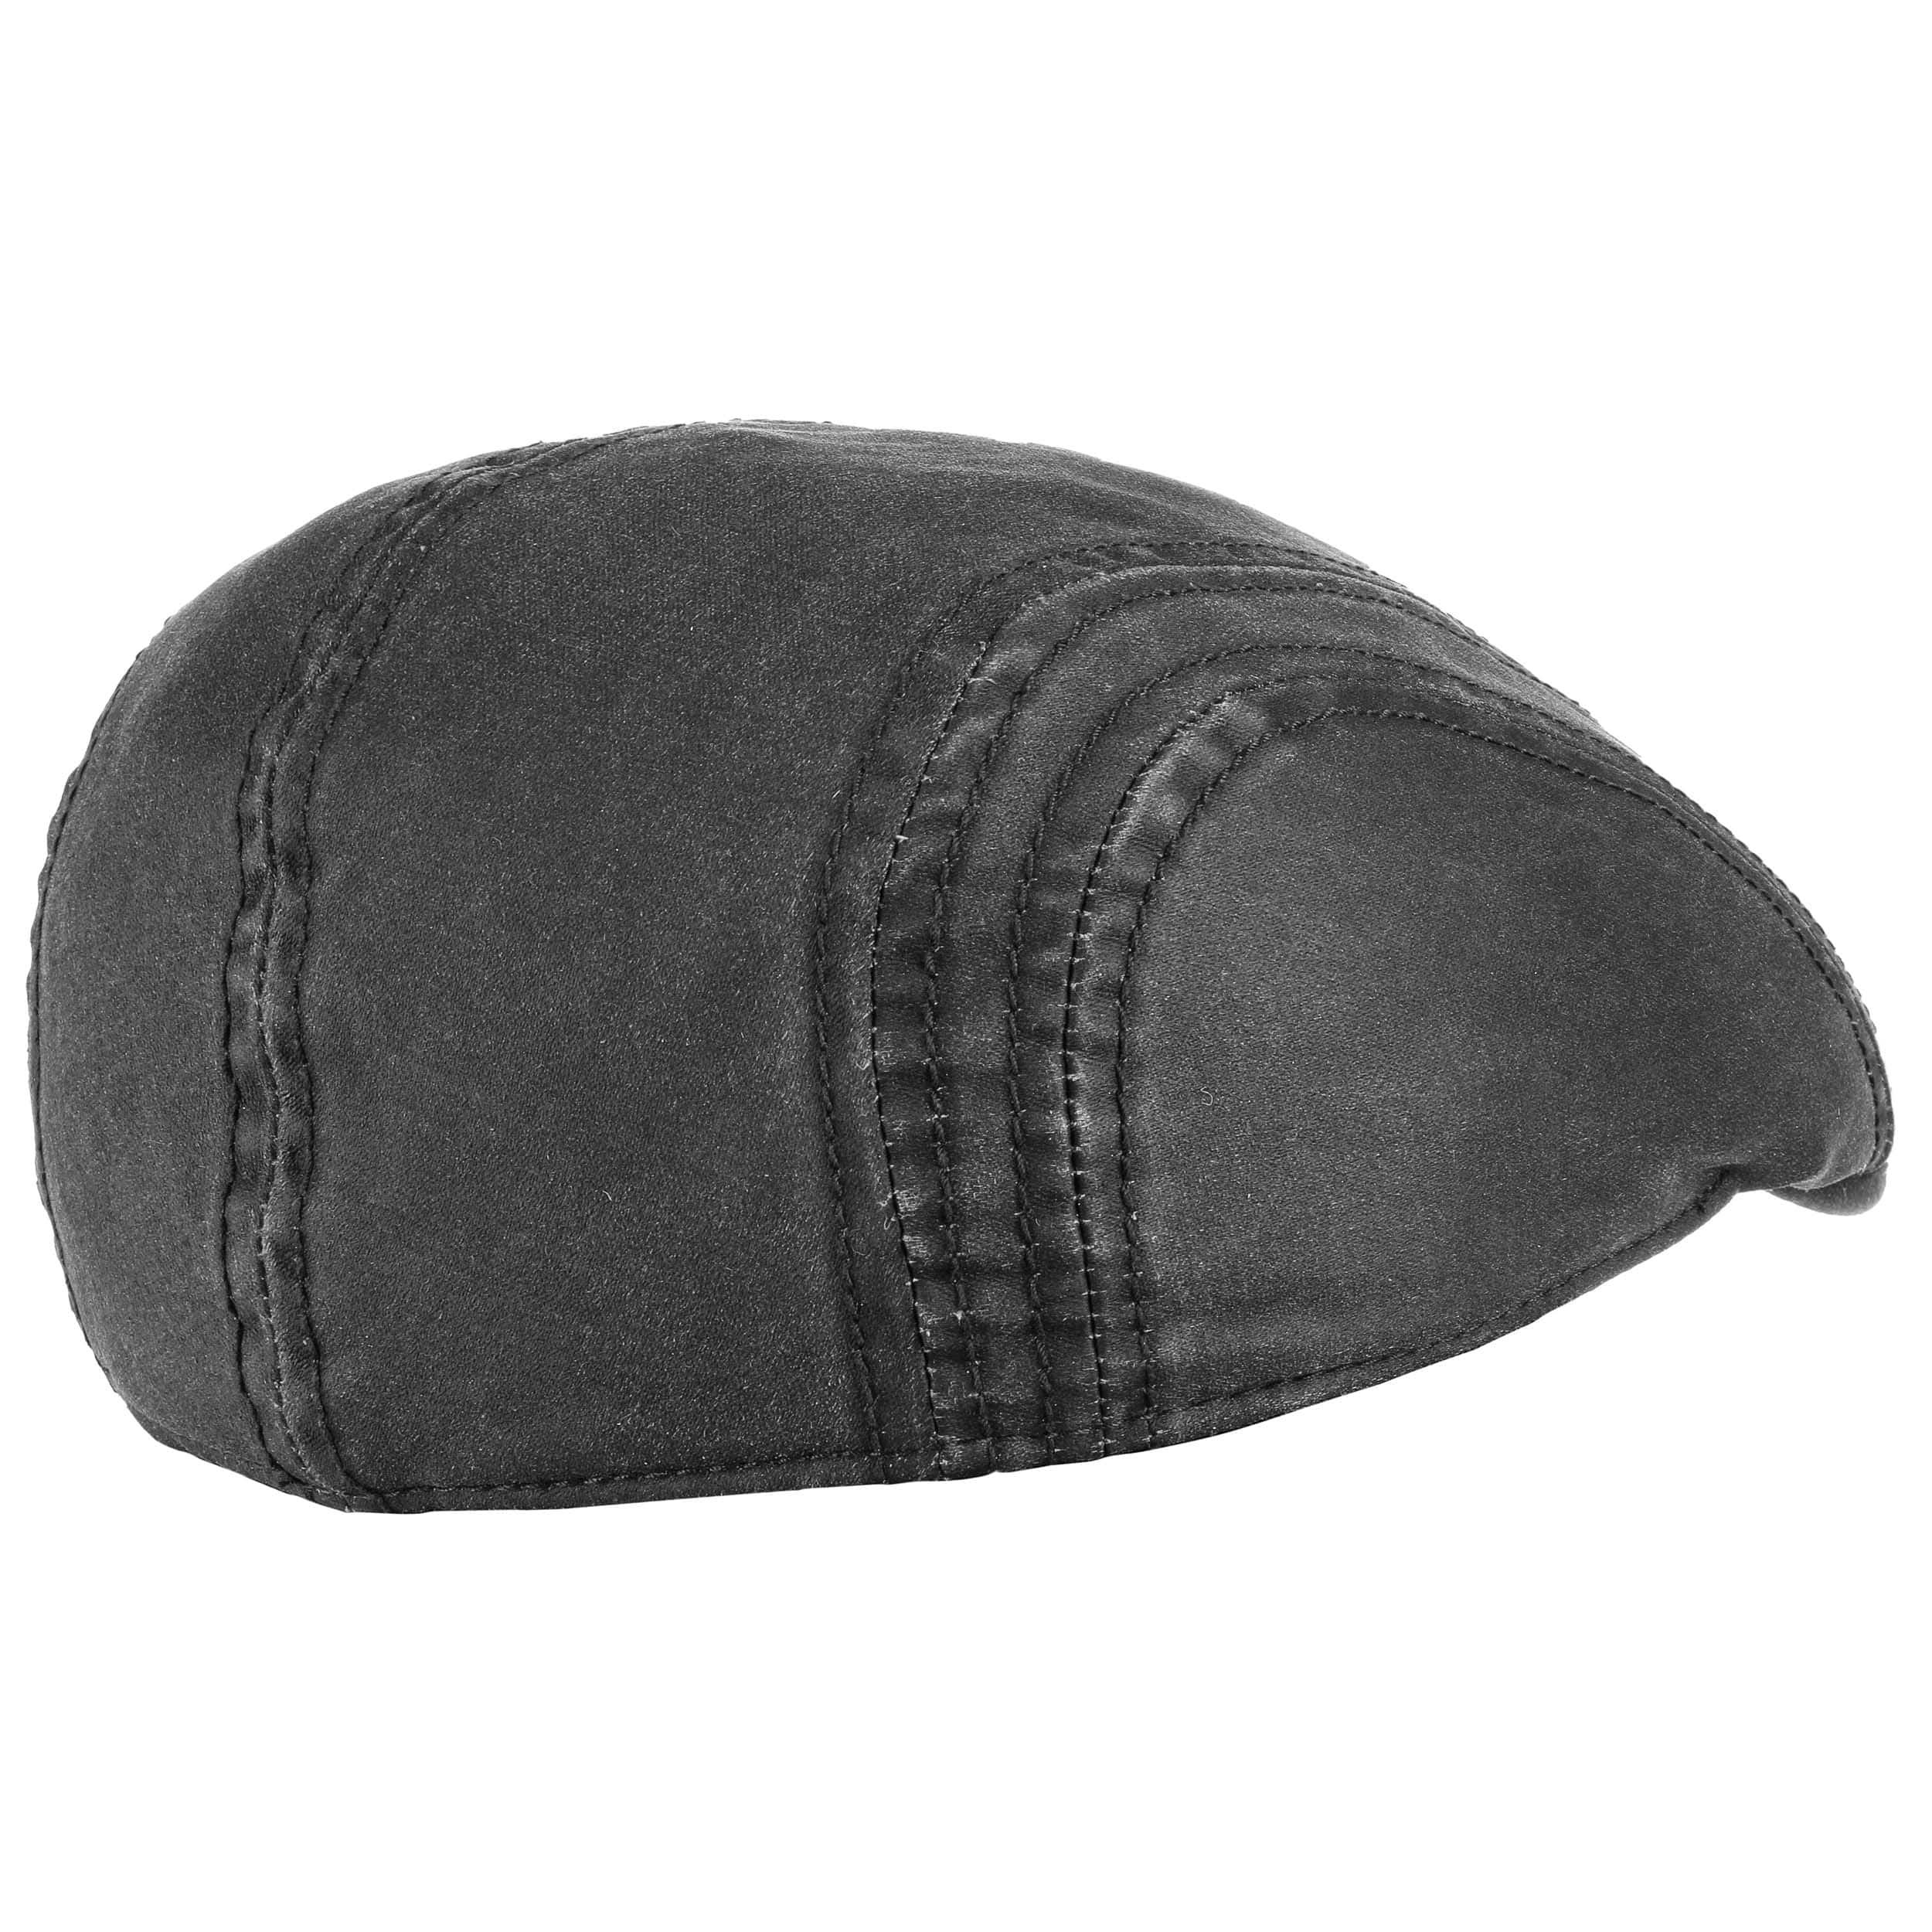 cfde3fbc040 ... Old Cotton Flat Cap with Ear Flaps by Stetson - black 8 ...